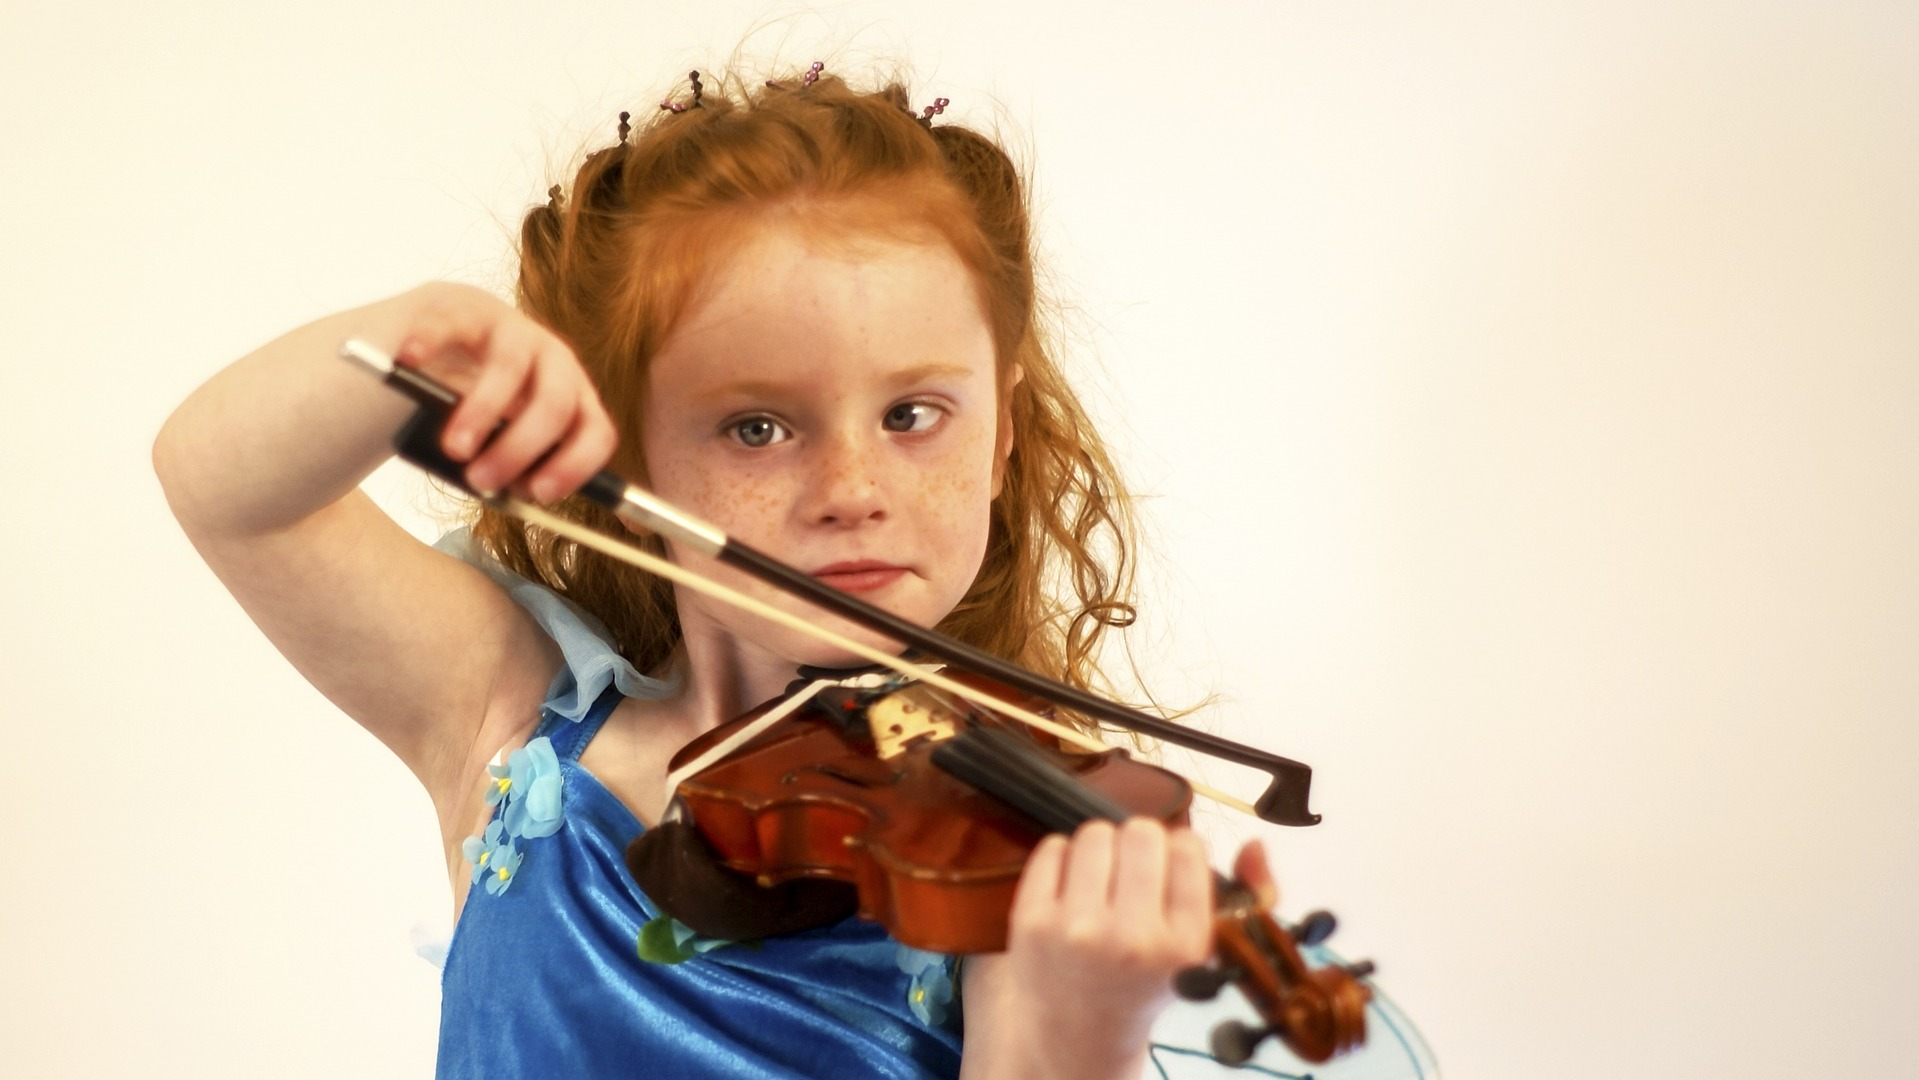 Red haired girl playing violin